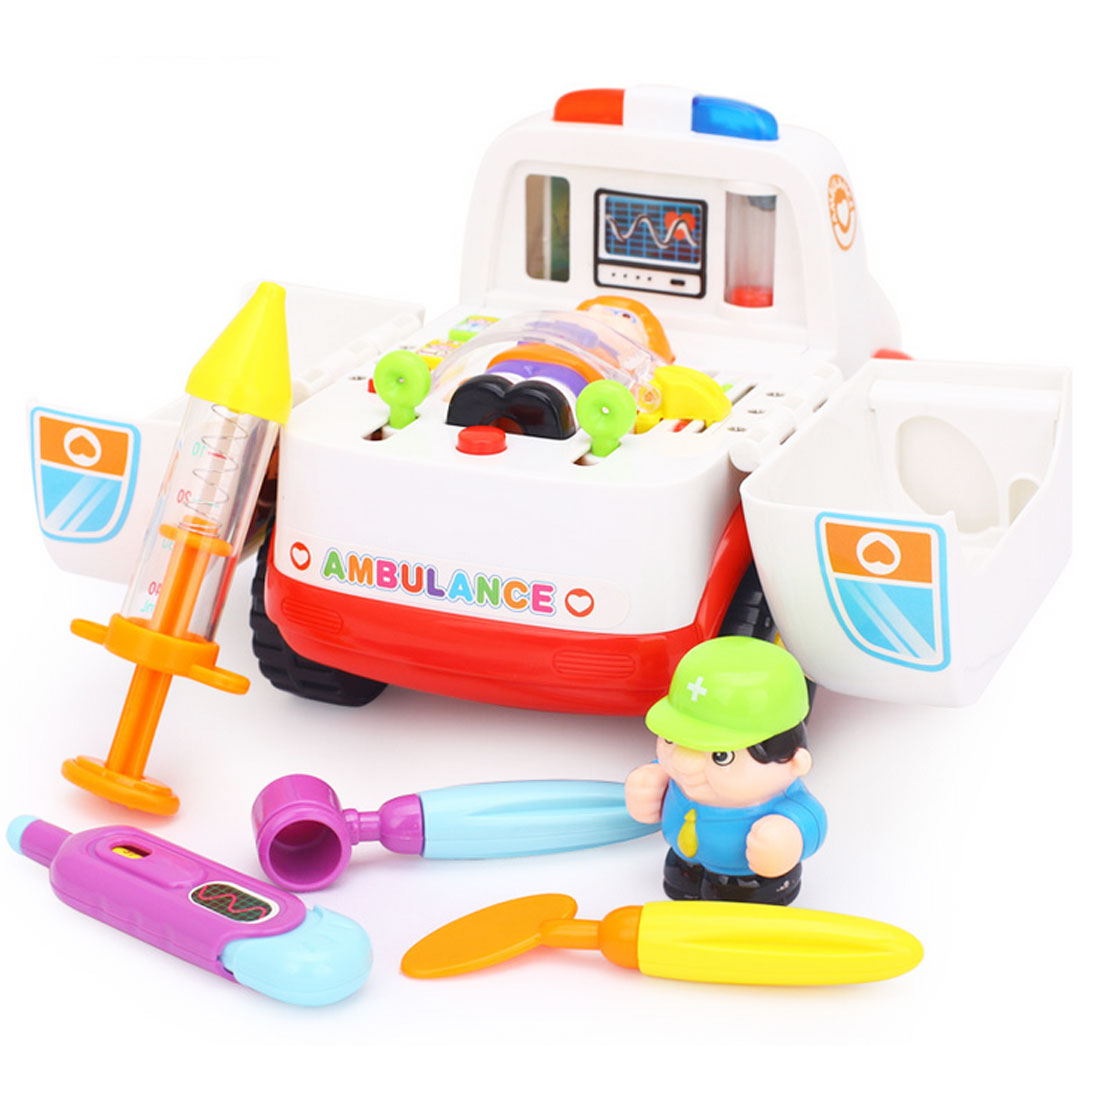 Toy Ambulance Hospital Toy Set Doctor Play set Ambulance Turns Into A Hospital Bed Doctor playset Nurse Kit for Kids in Doctor Toys from Toys Hobbies